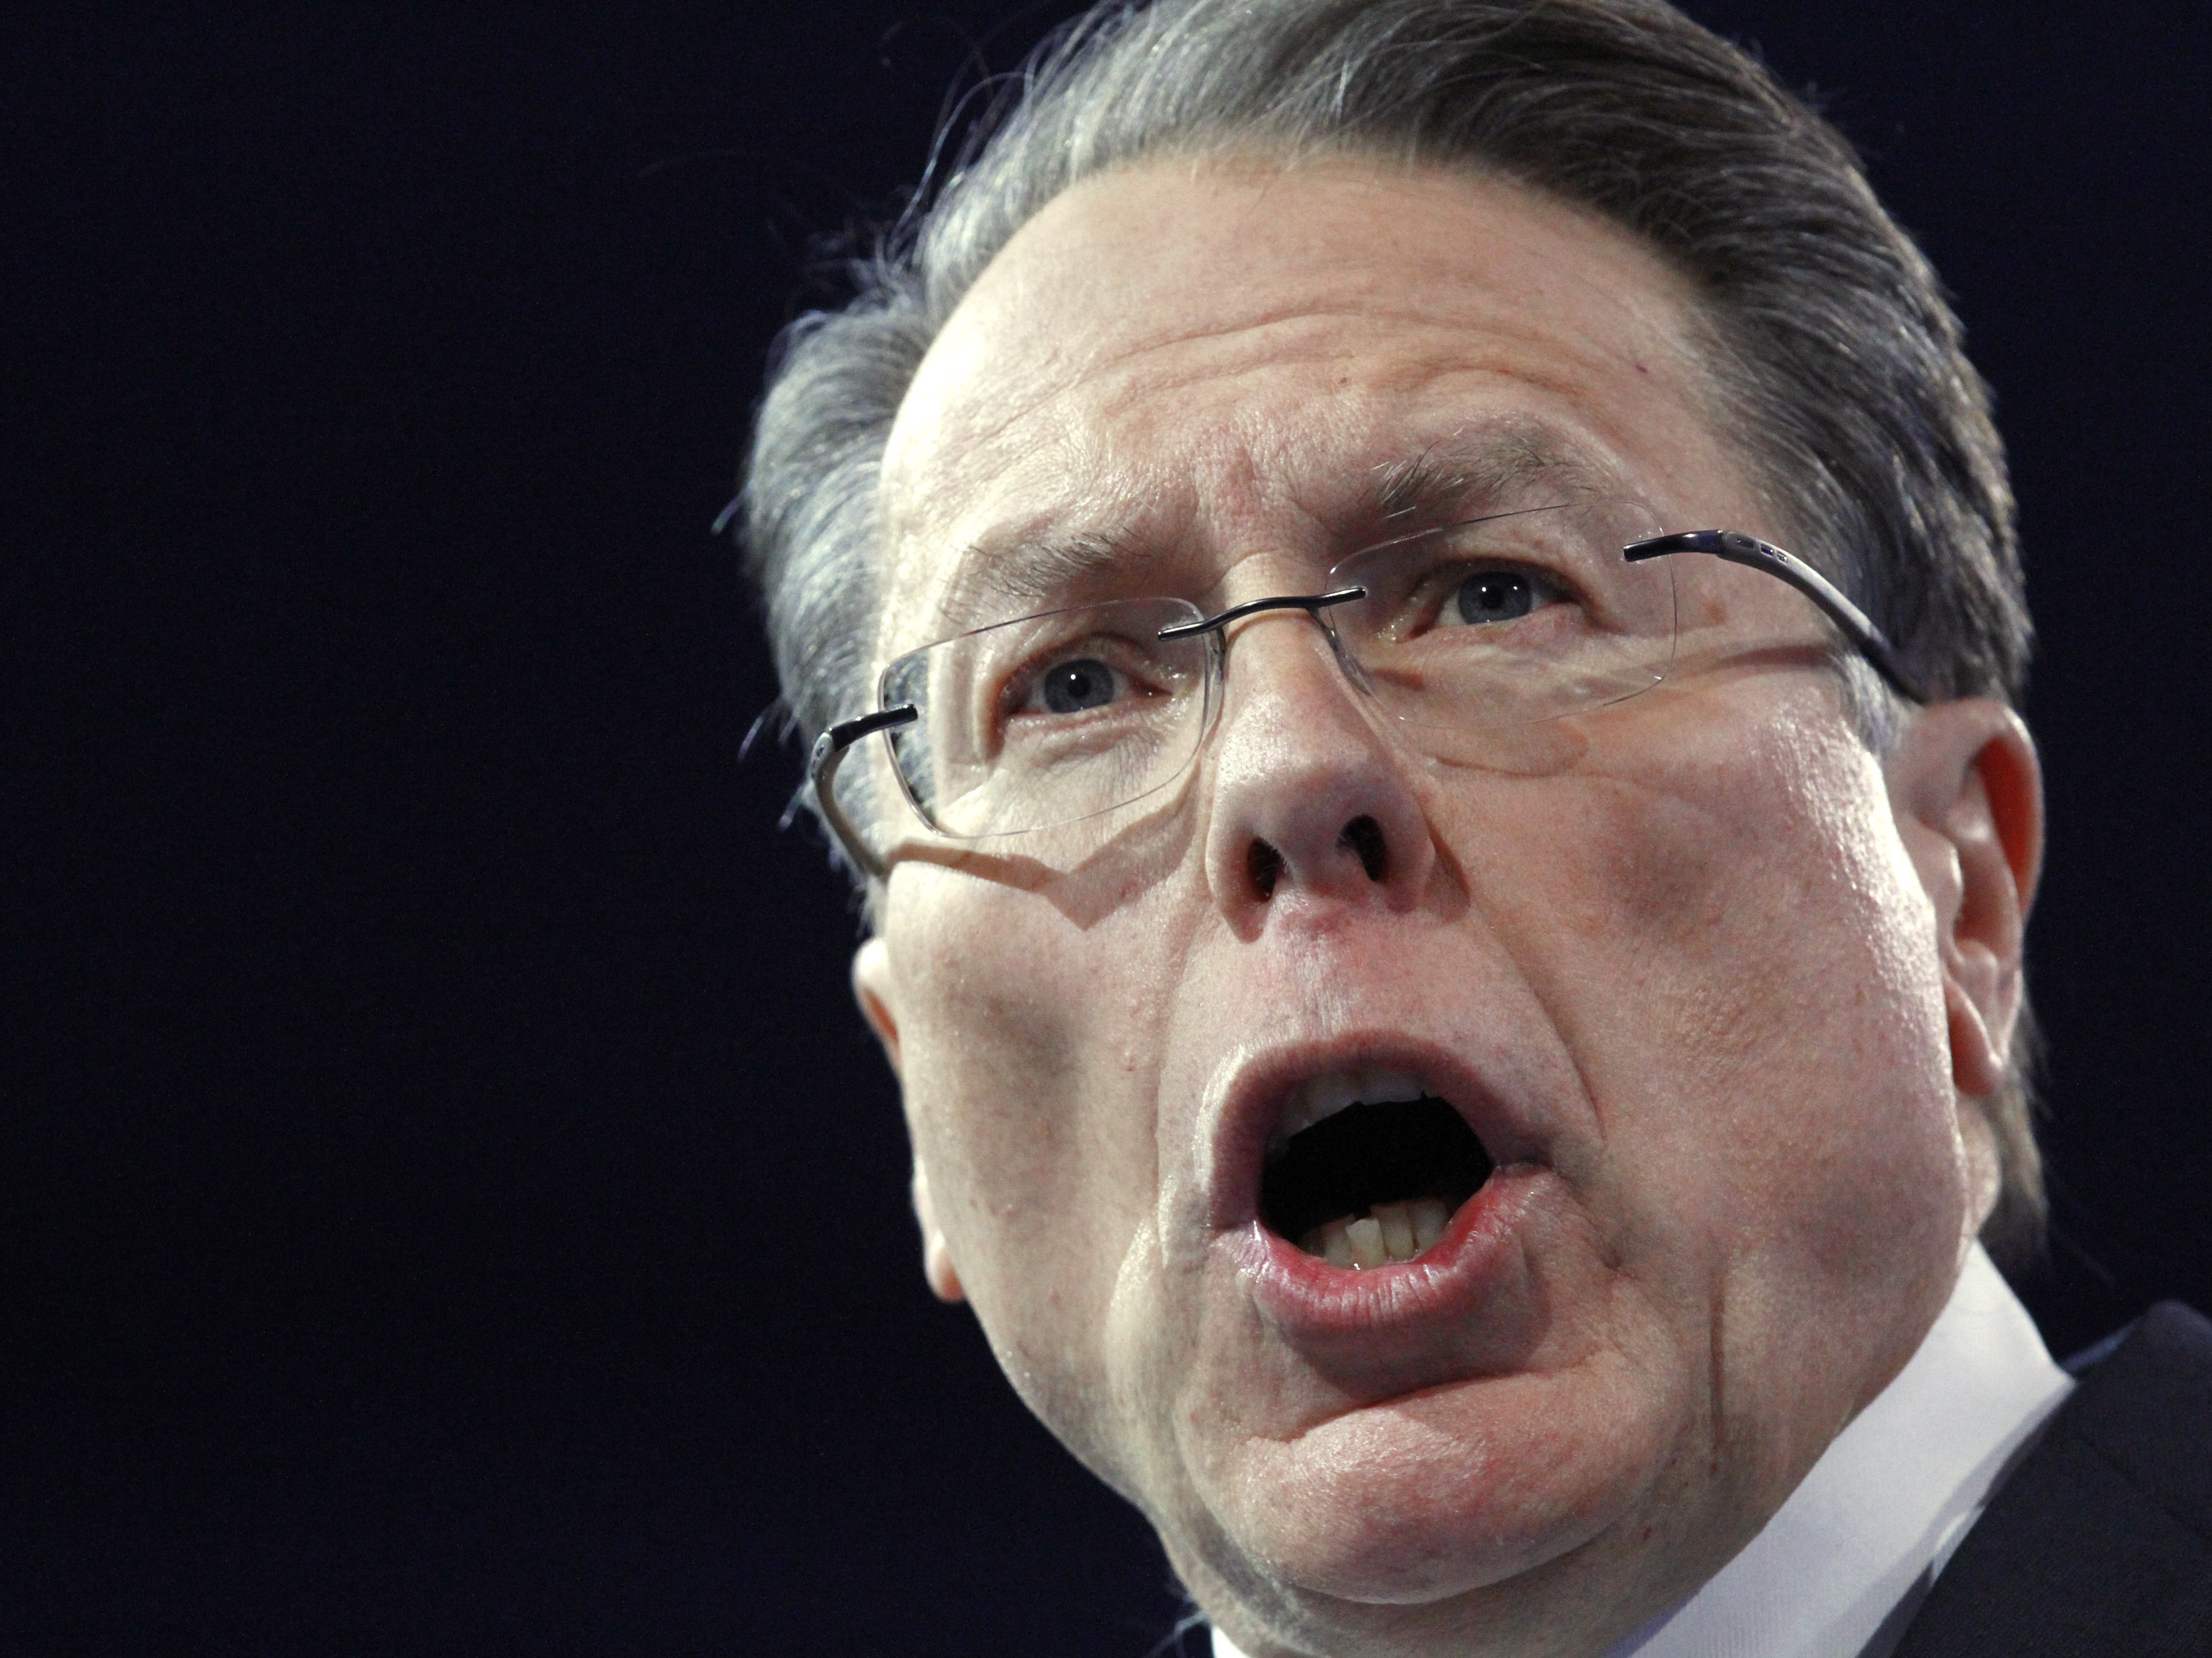 National Rifle Association CEO Wayne LaPierre speaks at the Conservative Political Action Conference in National Harbor, Md., on March 15. On Tuesday, the NRA issued its recommendations for protecting schools, which include arming personnel.